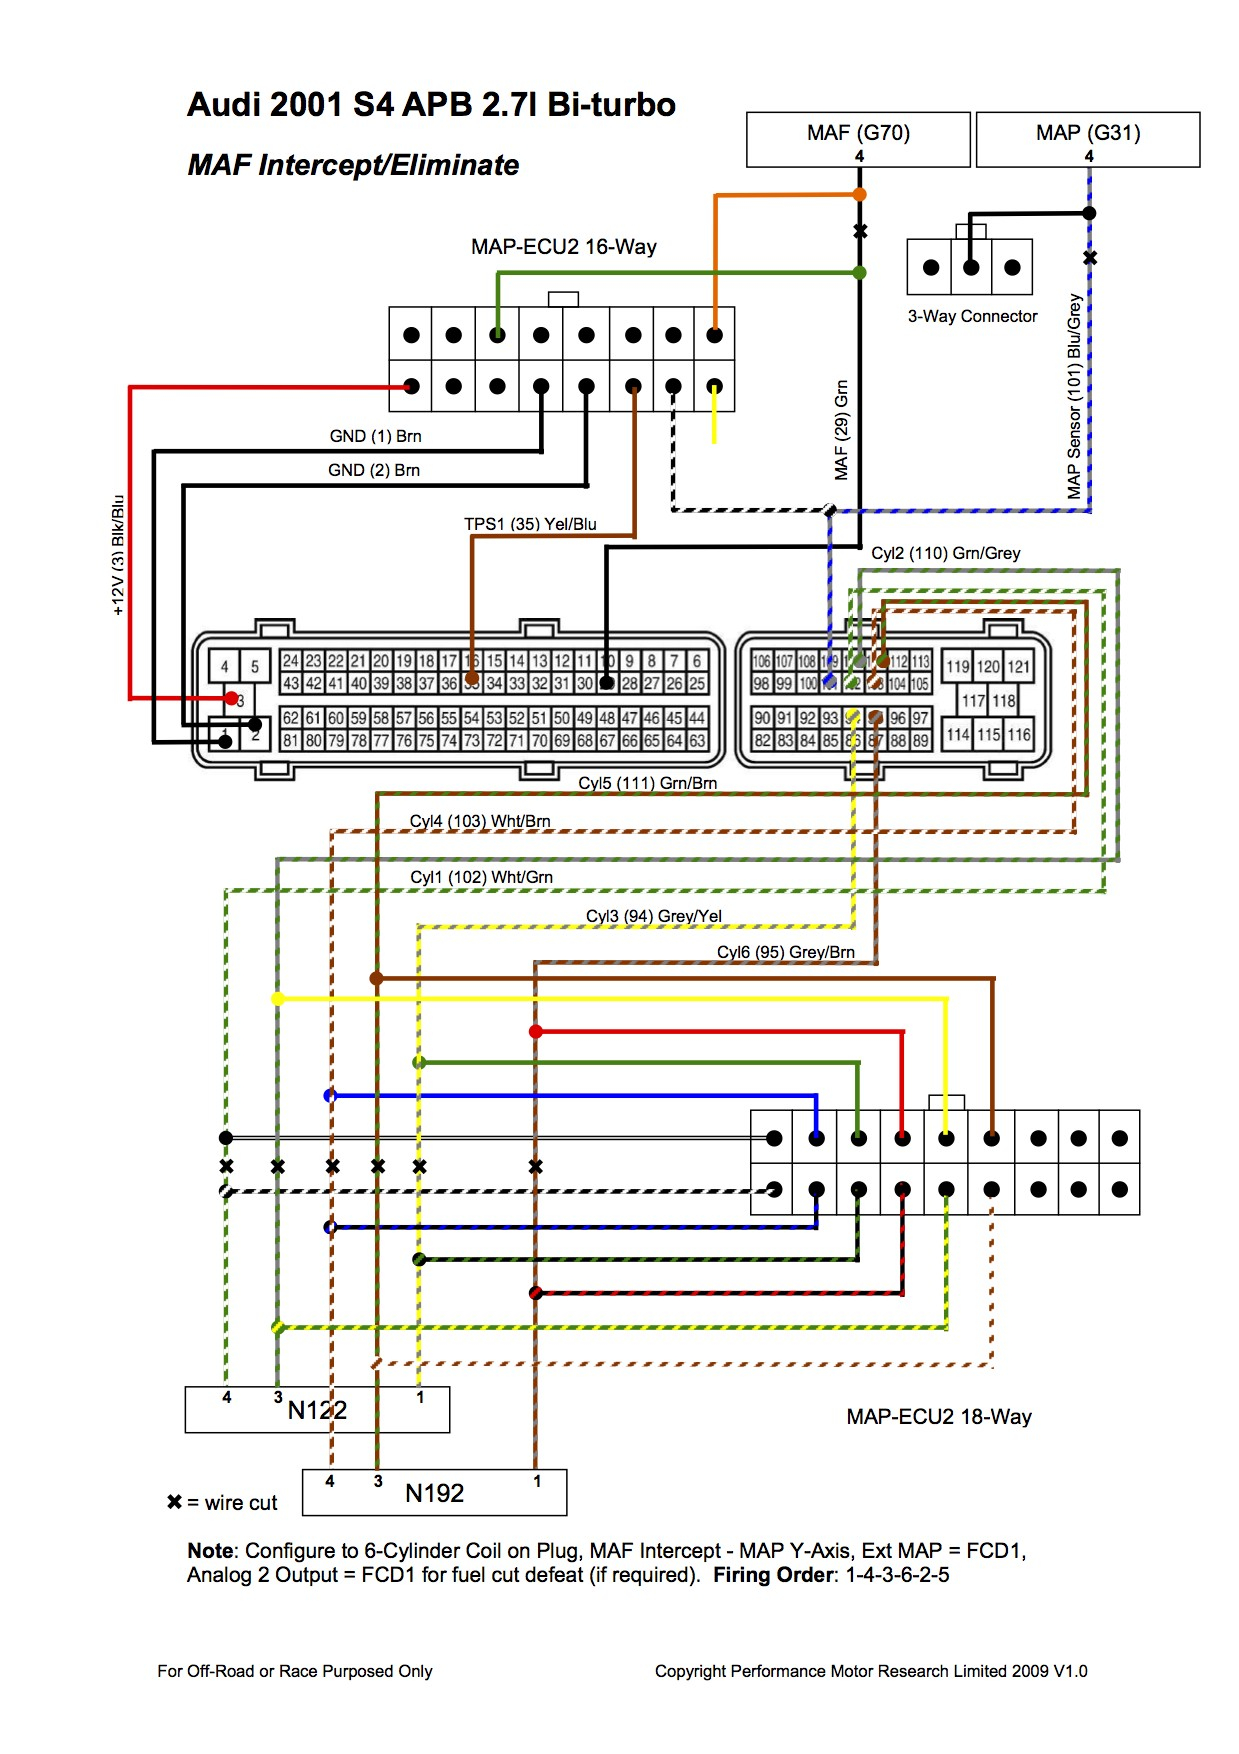 Nest Wiring Connection on diagram for heat pump, heat only, 3rd generation,